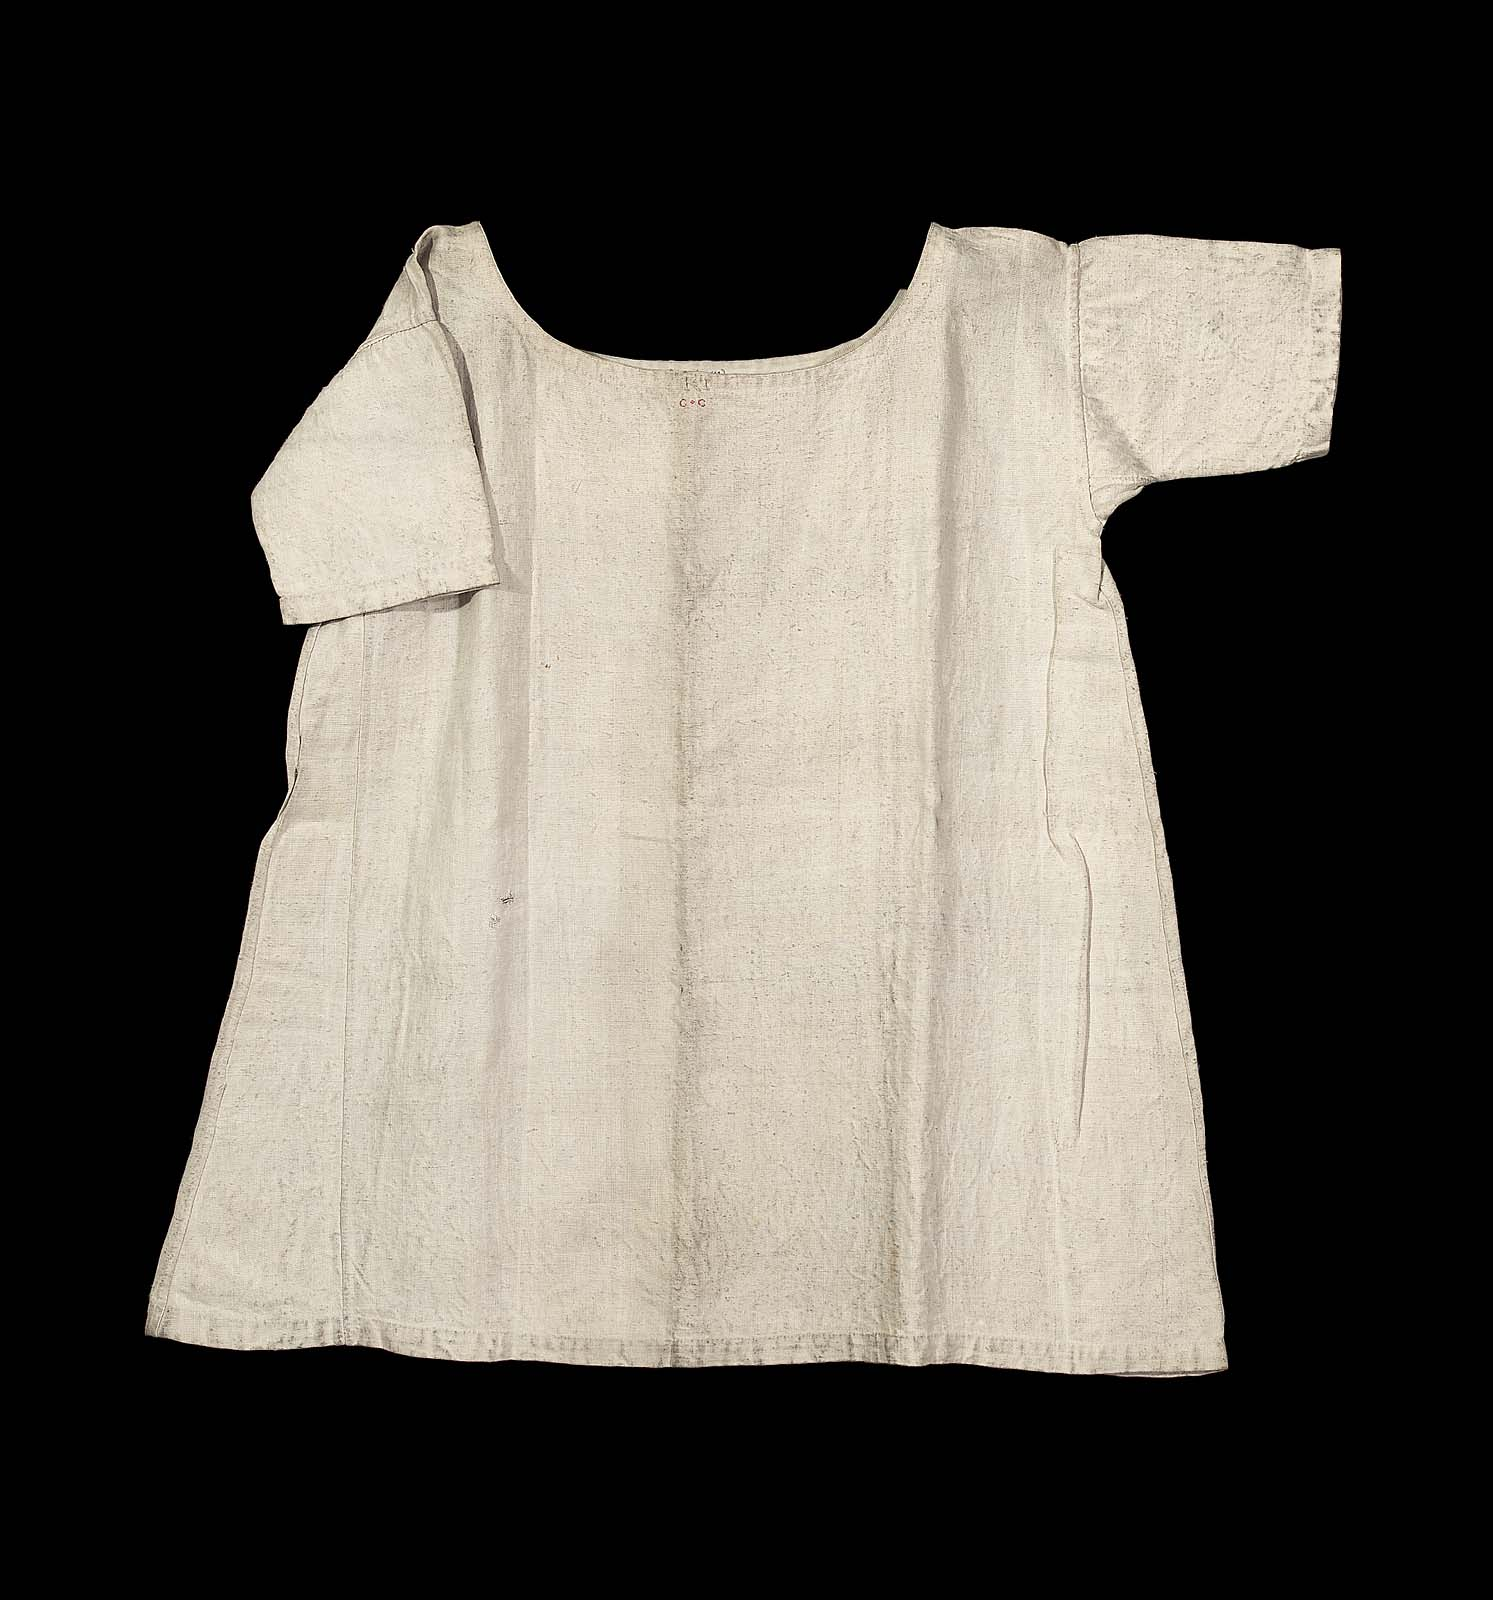 Chemise from MFA BoSTON - The Elizabeth Day McCormick Collection